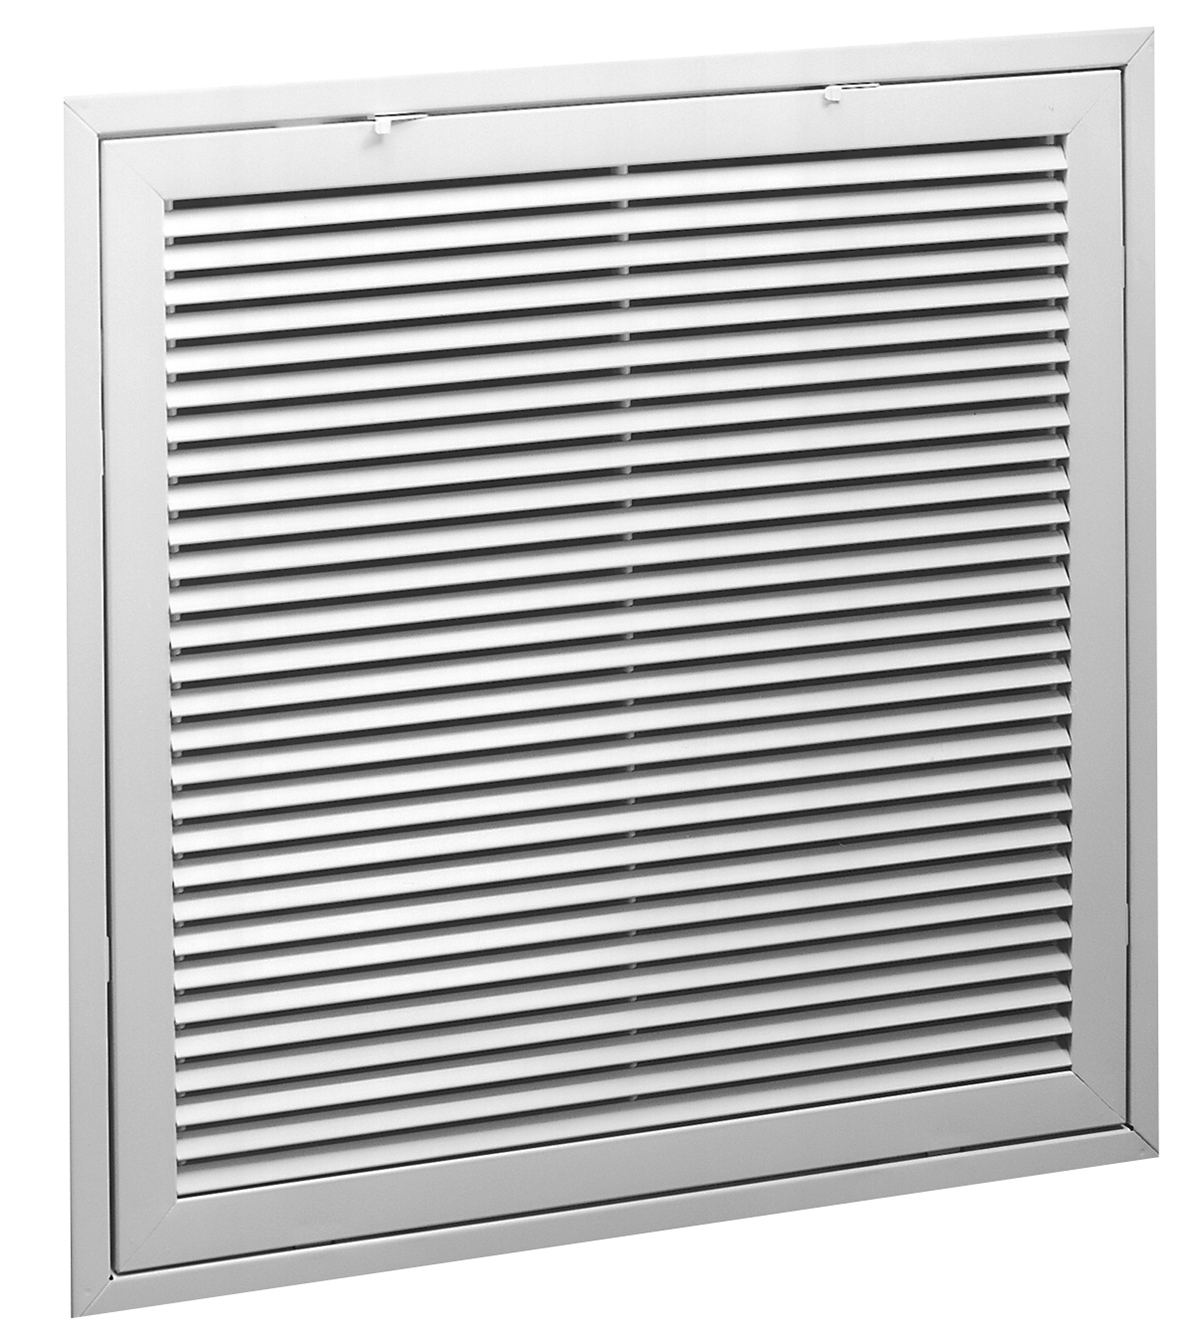 490tw Steel Fixed Bar Return Air Filter Grille Ameriflow